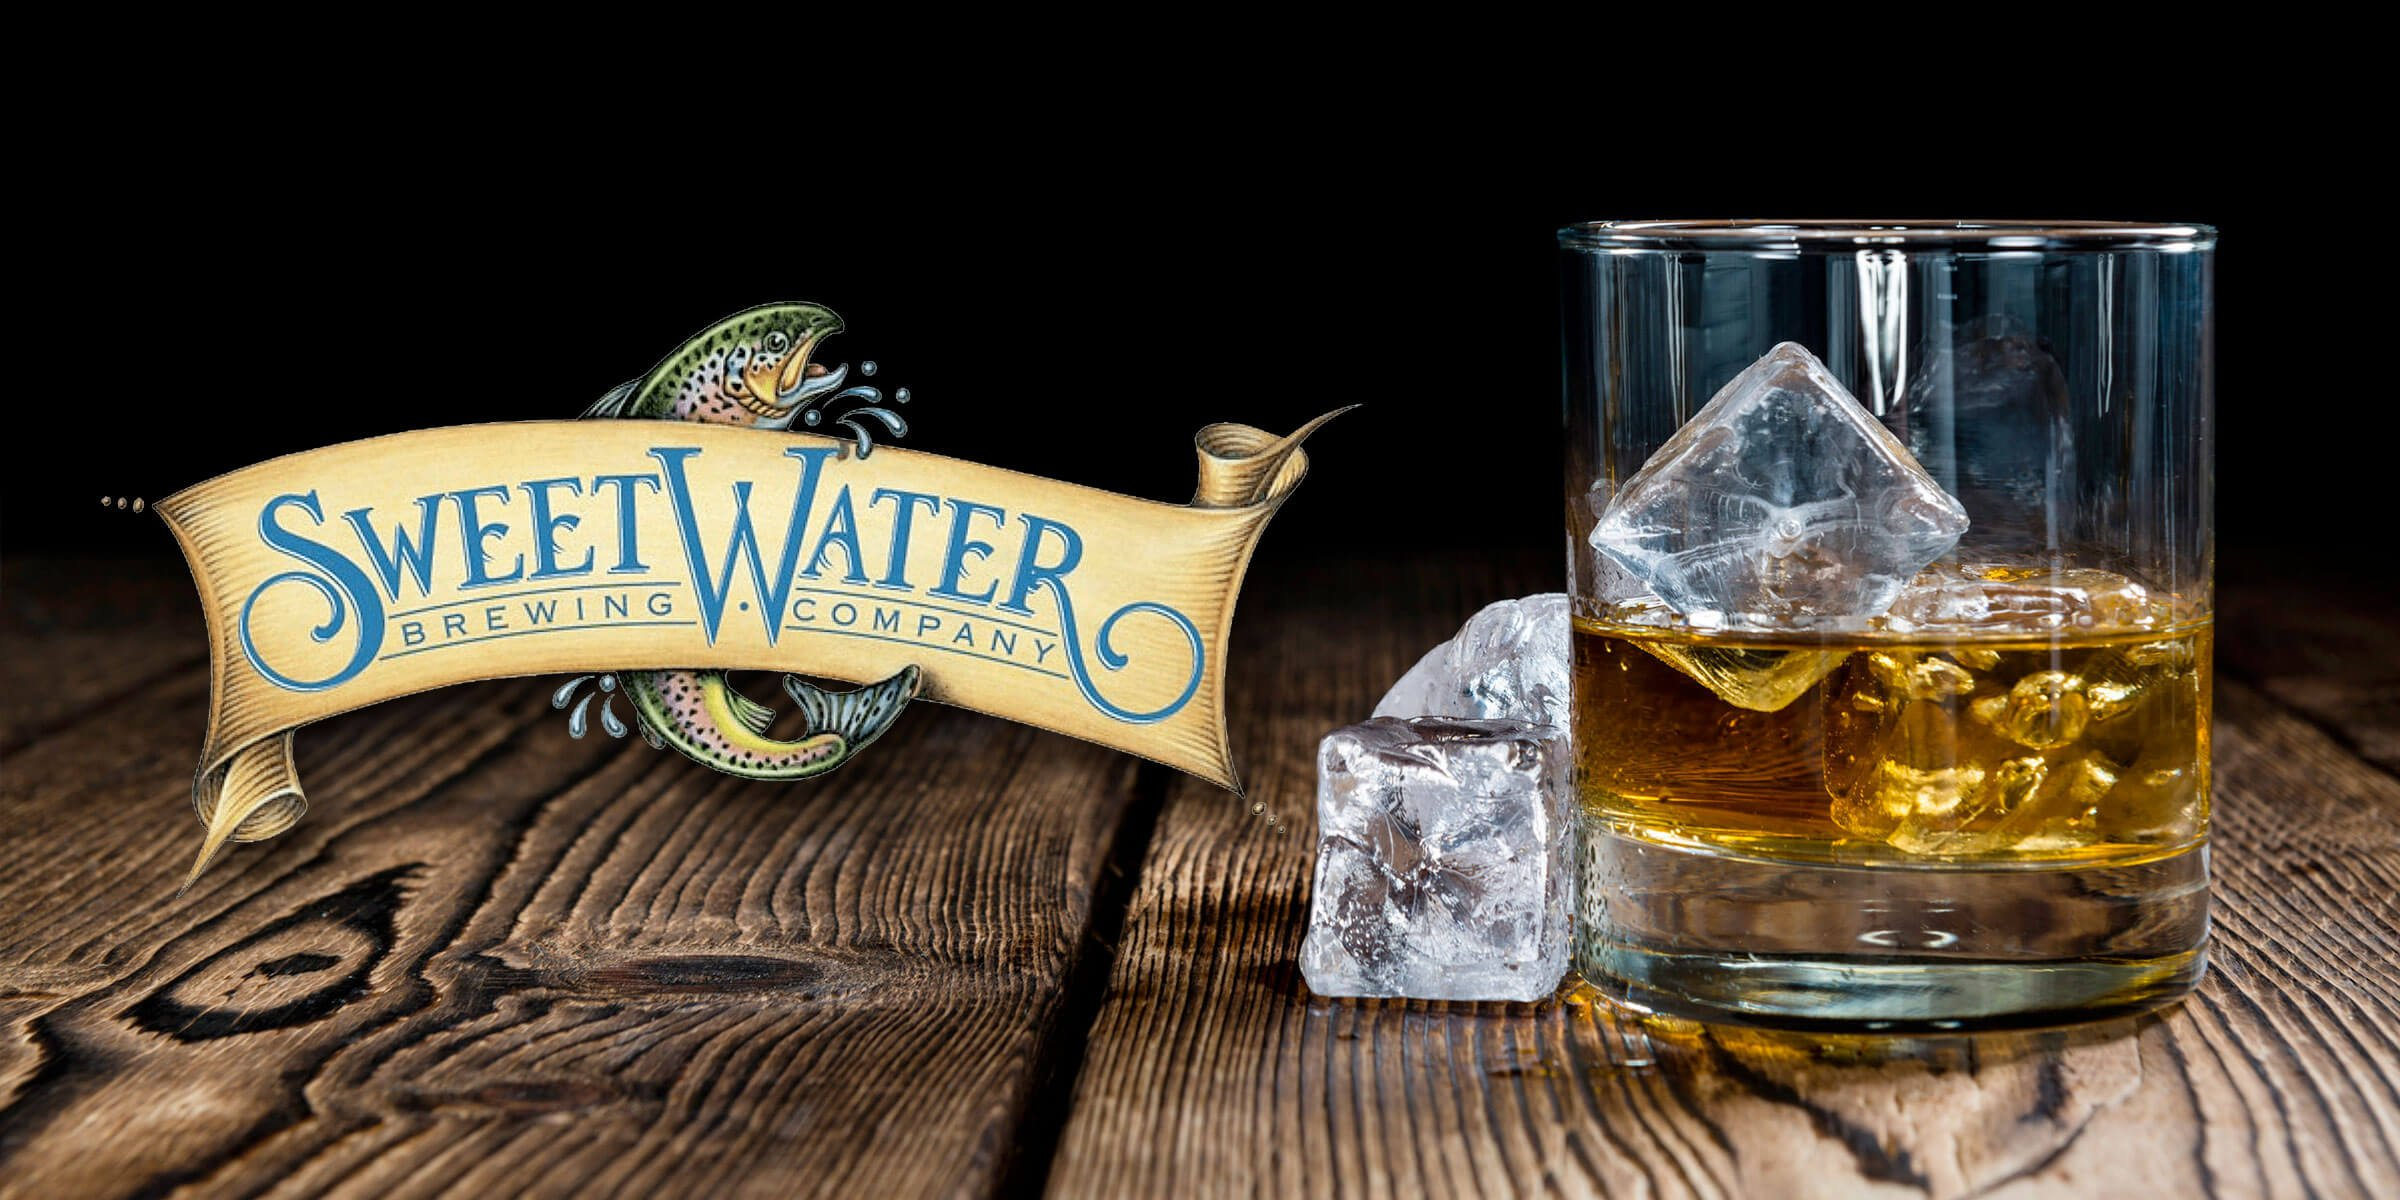 With a license and unanimous approval for the project, Atlanta-based SweetWater Brewing Company plans to open a distillery at its Buckhead headquarters.